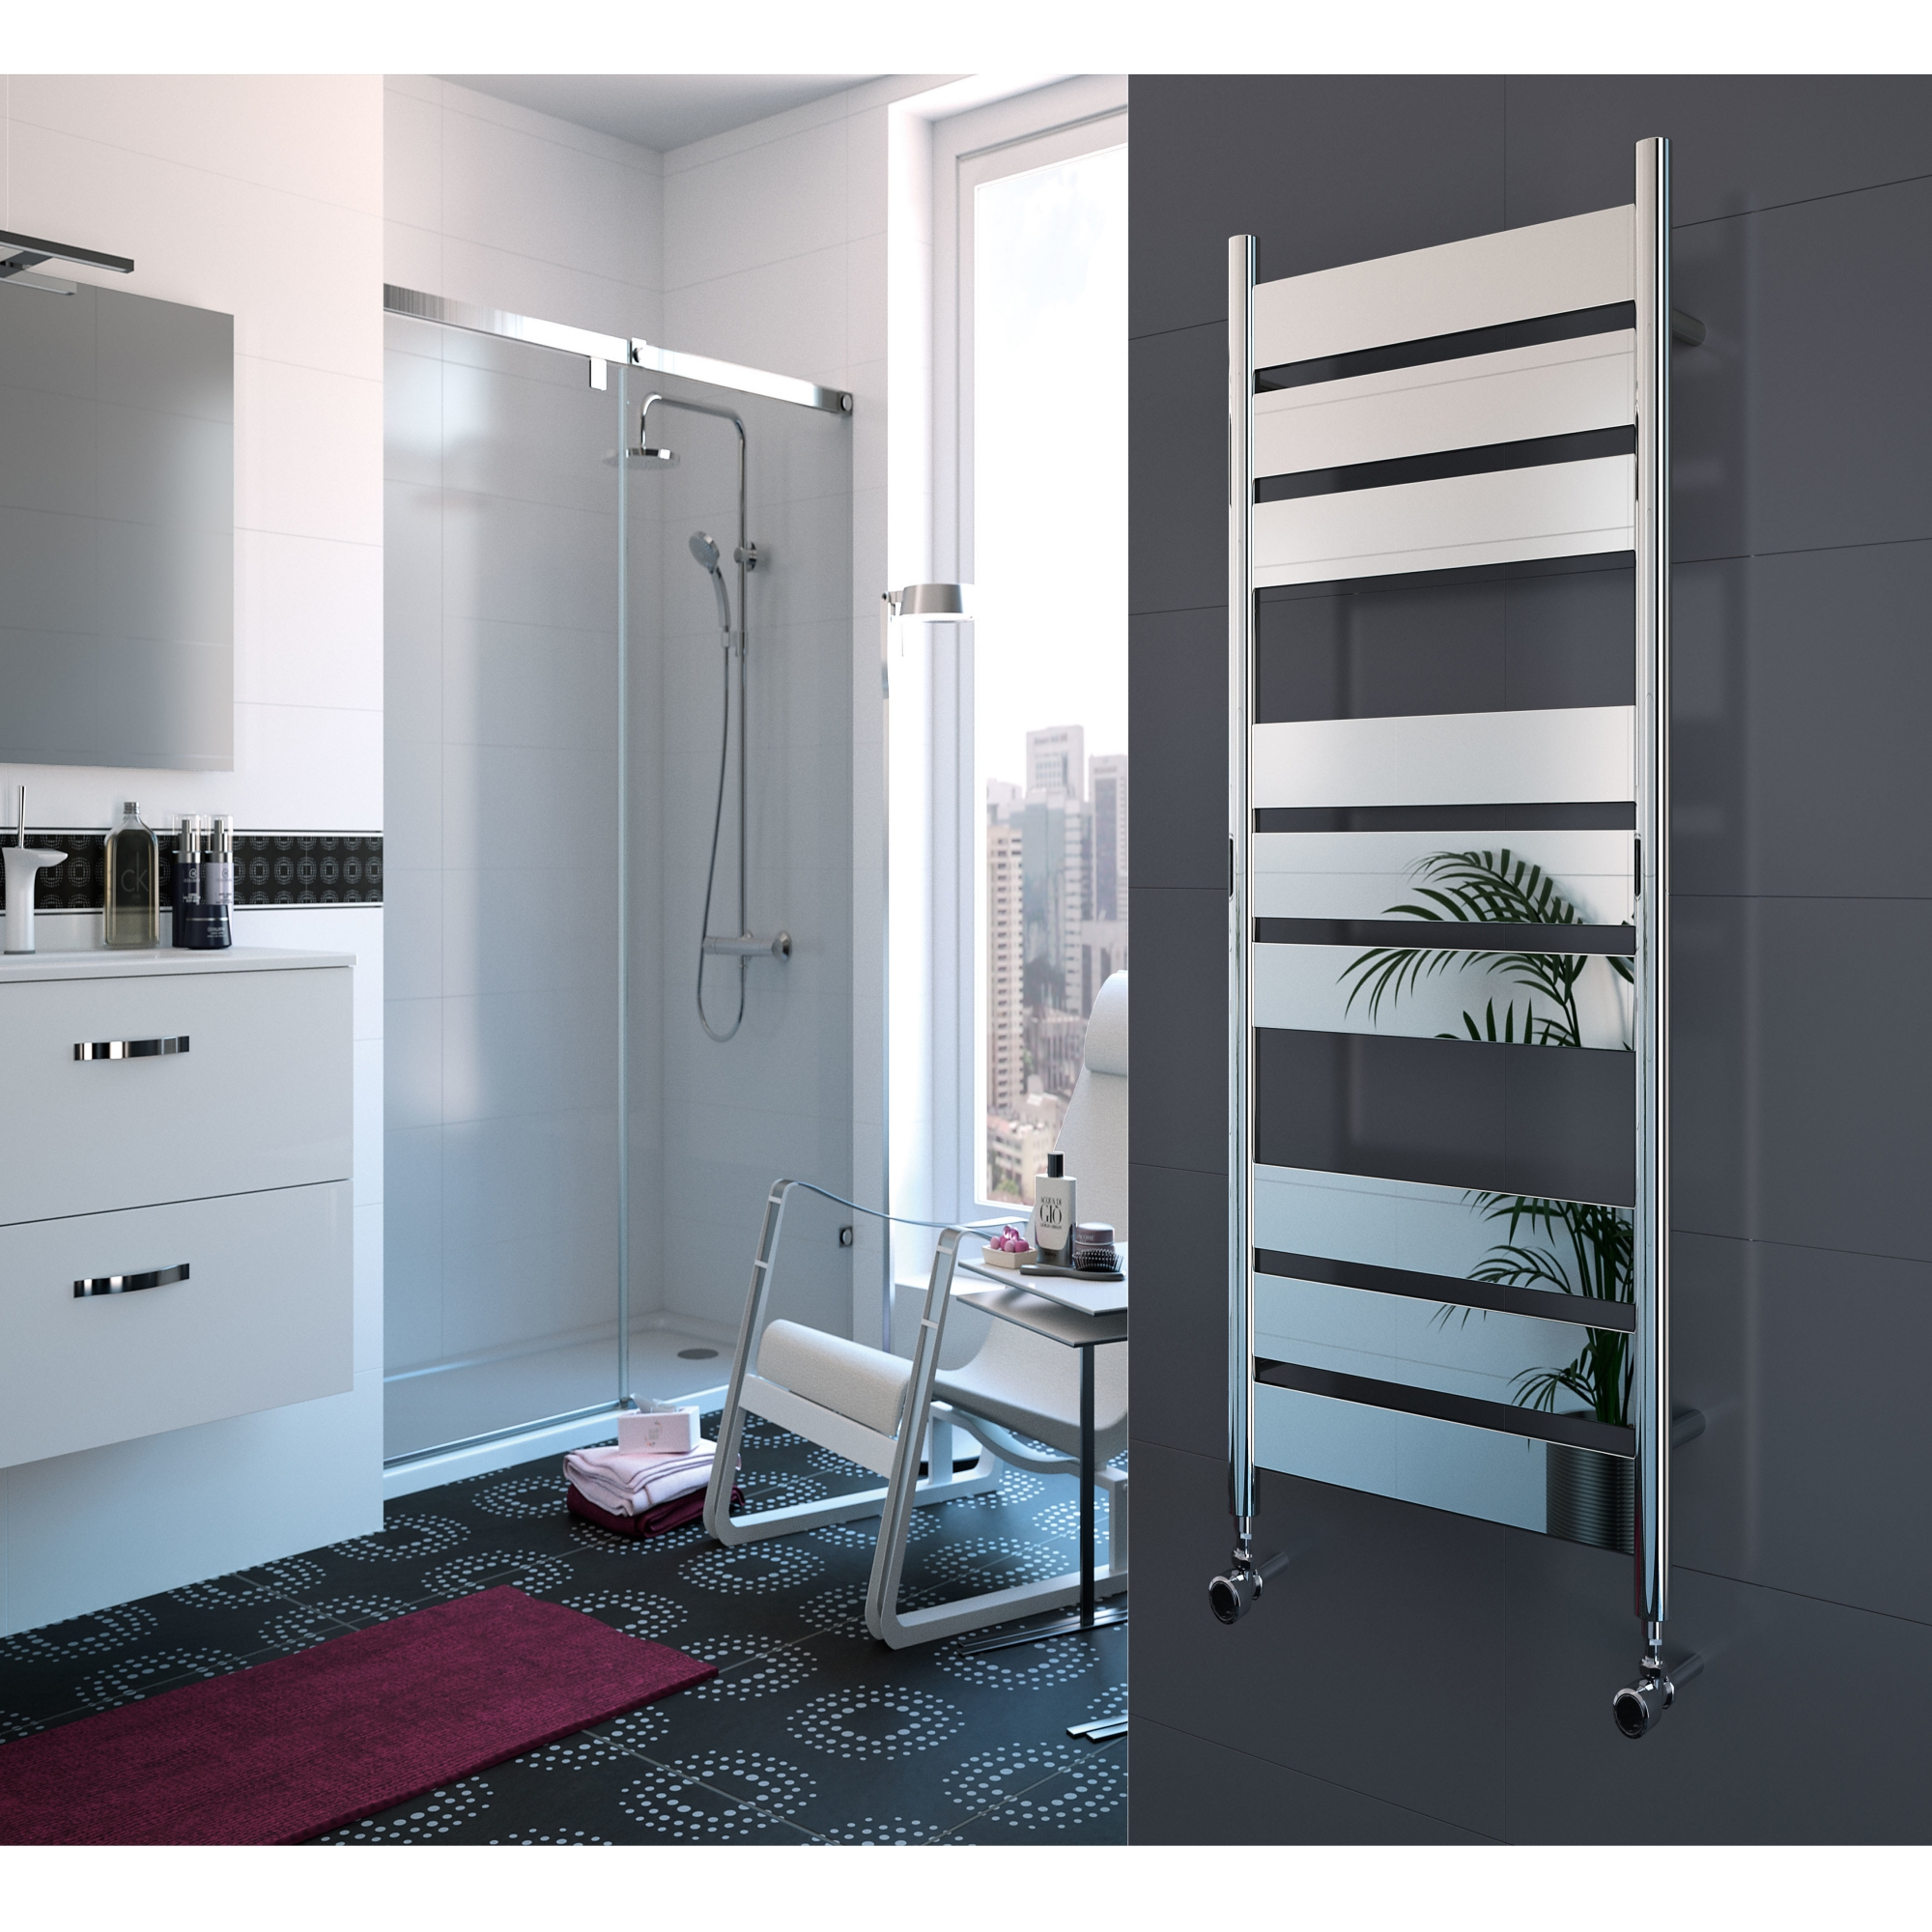 Radox Apollo Designer Heated Towel Rail 700mm H x 500mm W Anthracite